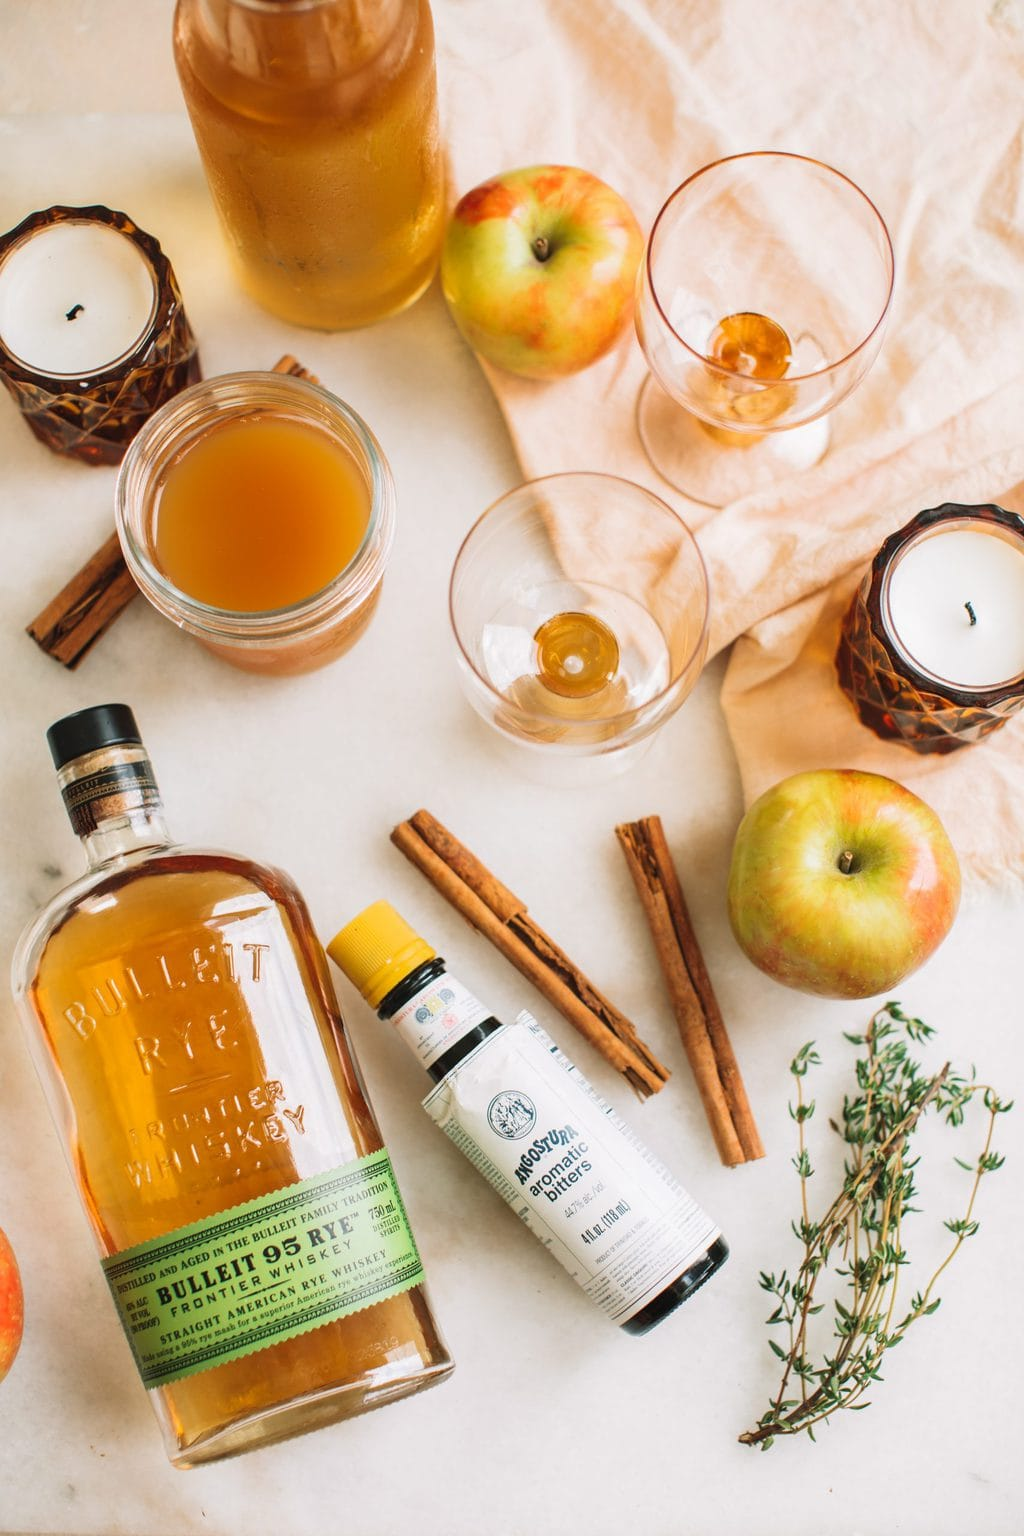 Two glass cubs, one glass mason jar, two candles, one apple, cinnamon sticks, a bottle of Bullet bourbon, and a bottle of apple cider